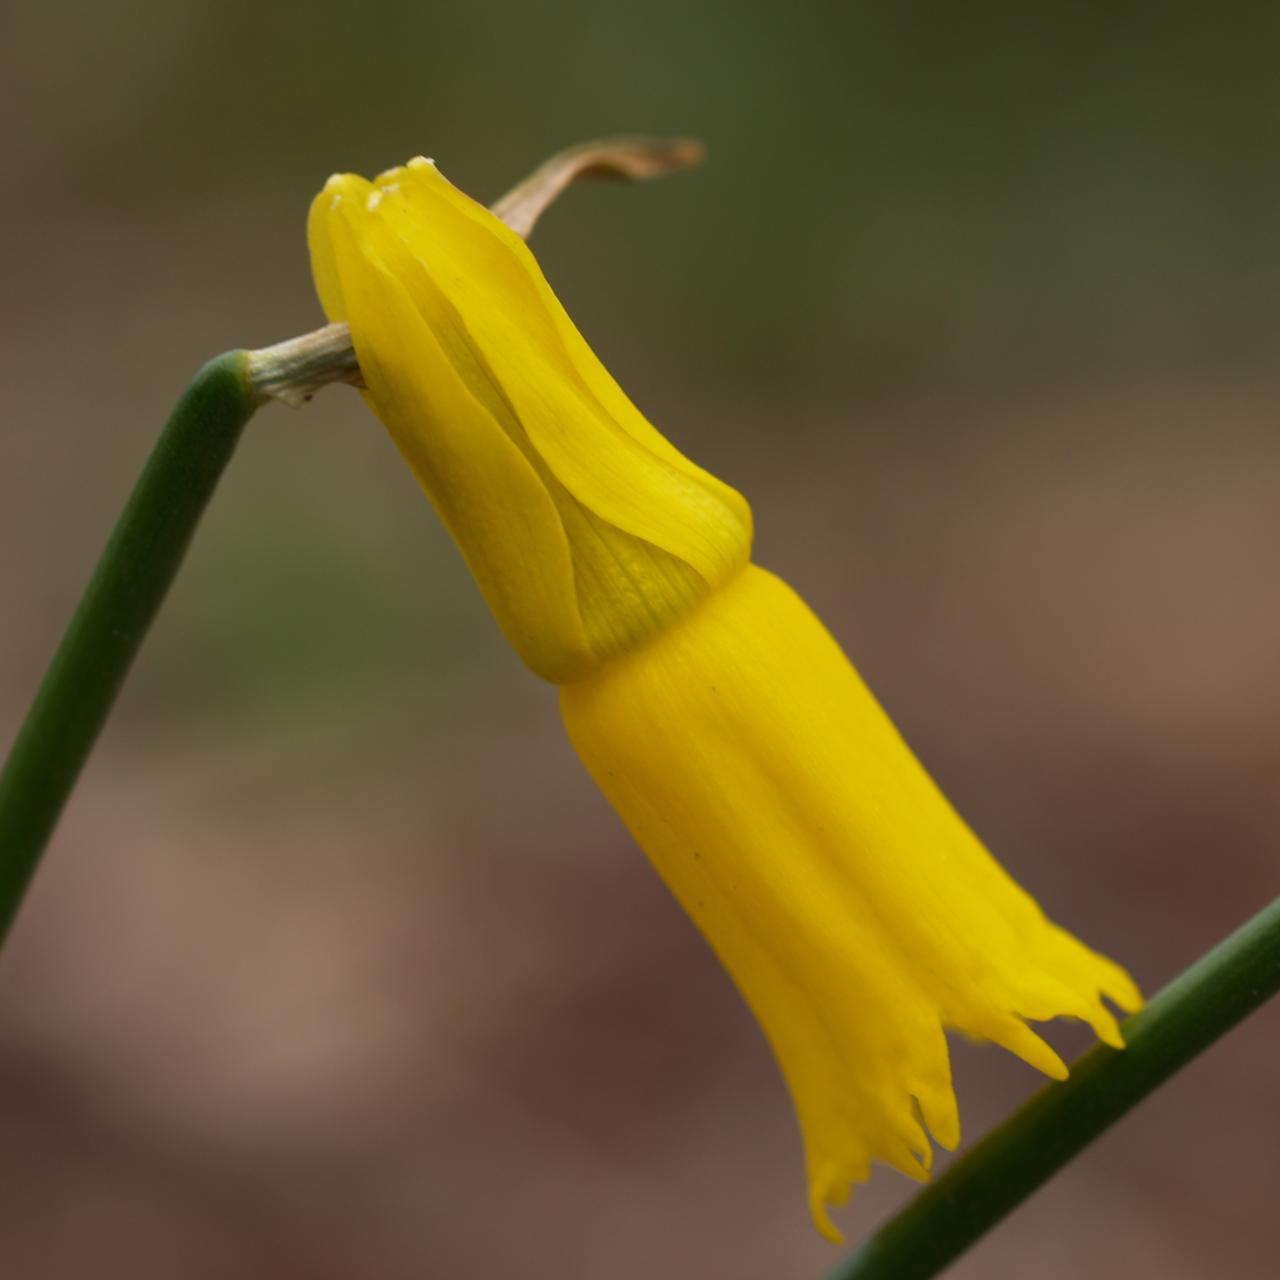 Narcissus cyclamineus plant